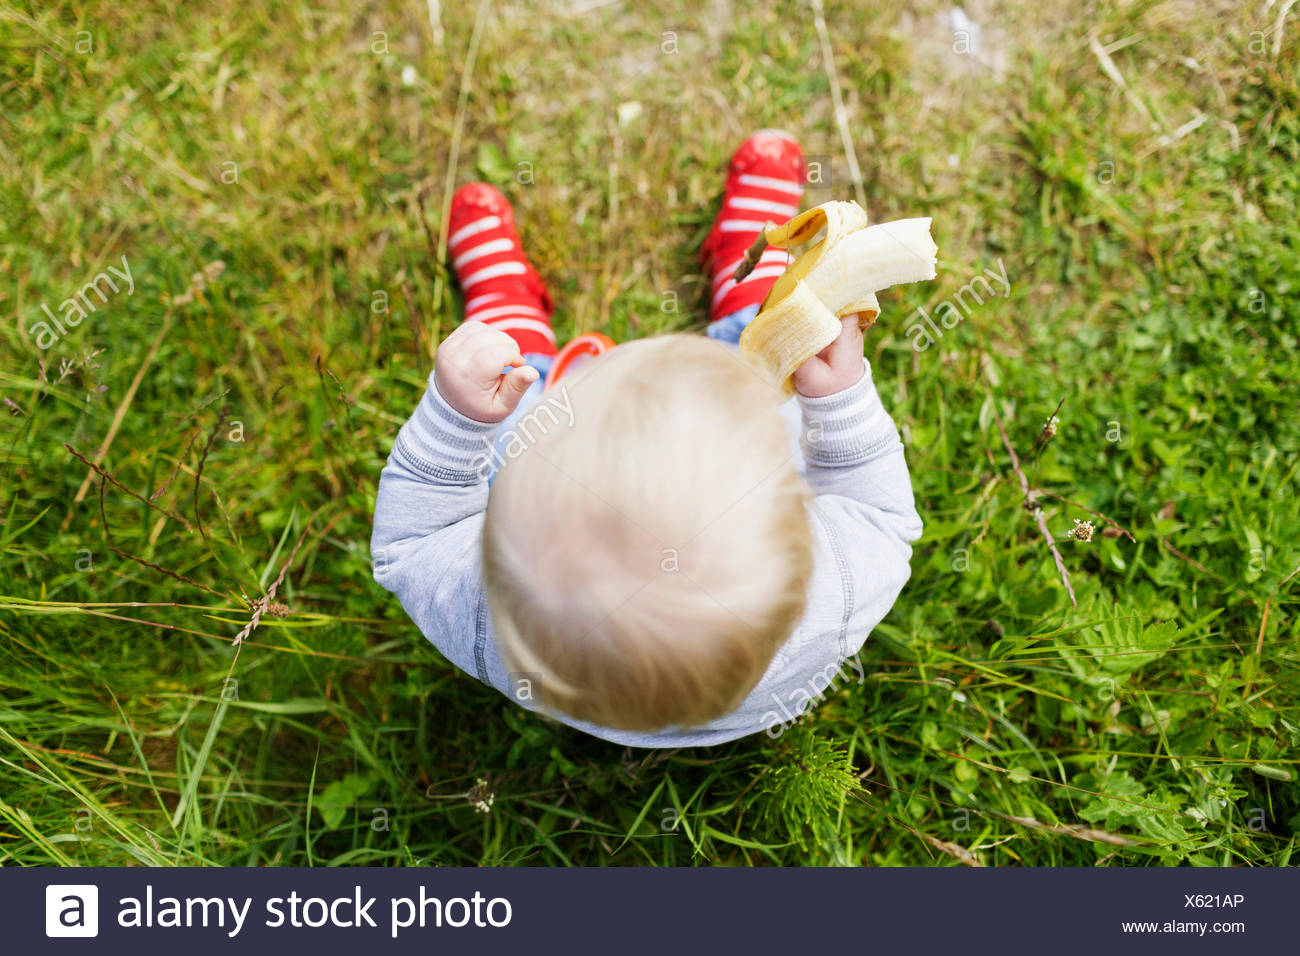 Directly above shot of baby boy holding banana on grassy field Stock Photo